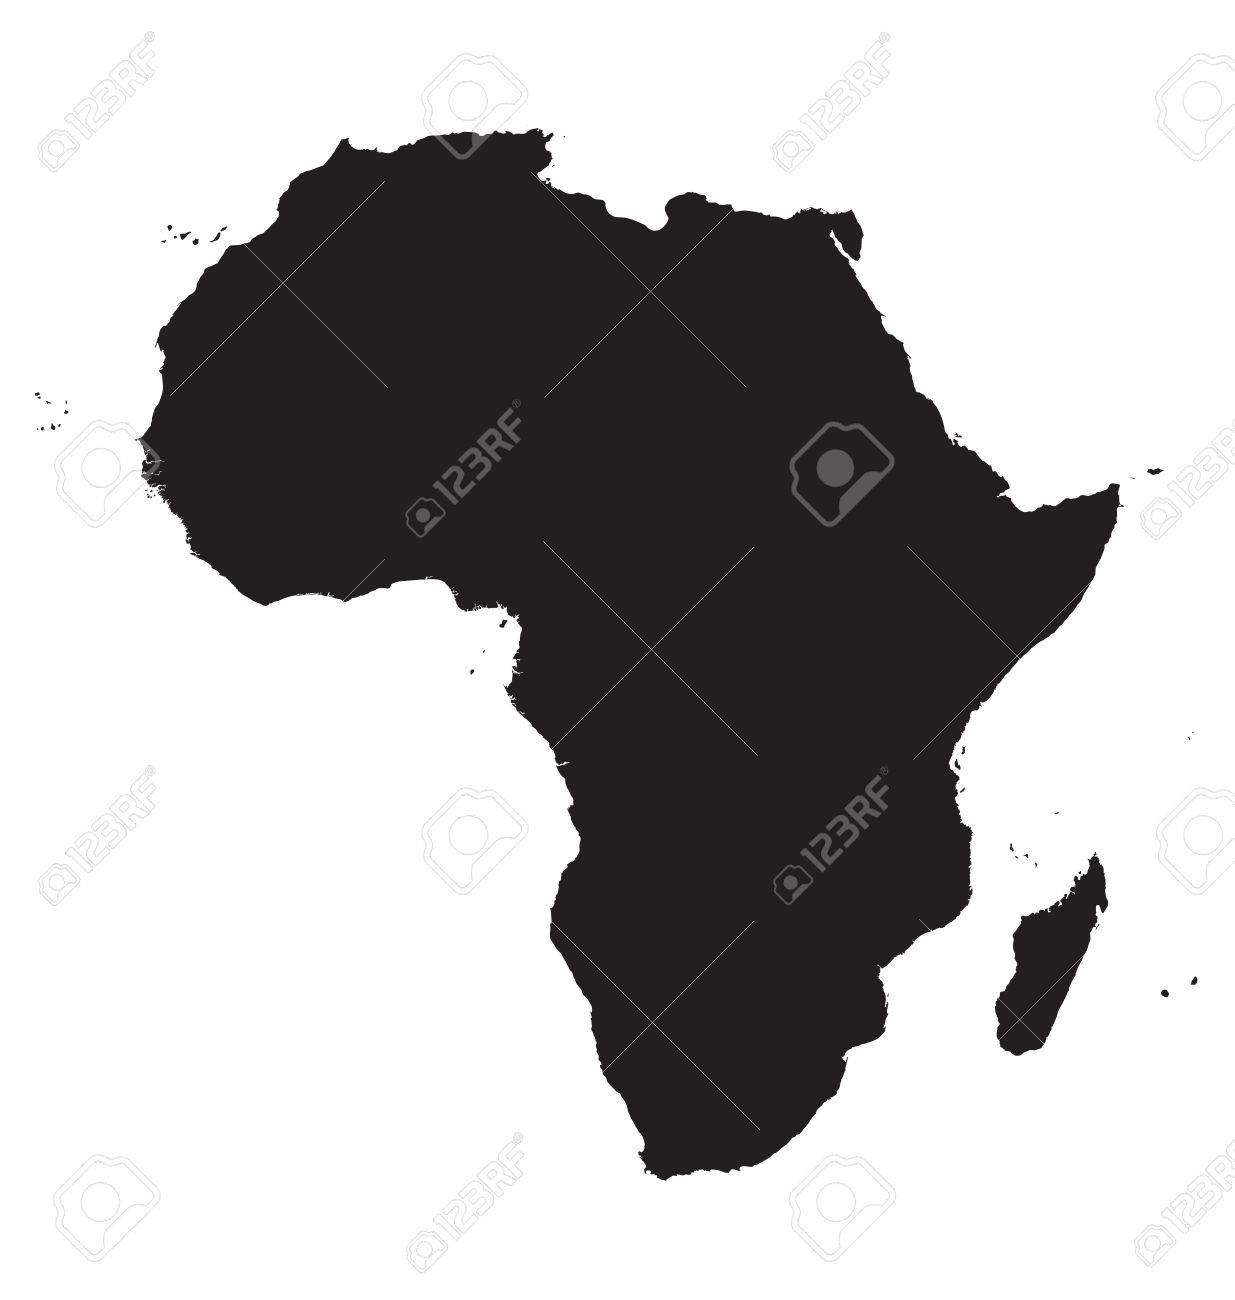 Black Map Of Africa Royalty Free Cliparts, Vectors, And Stock